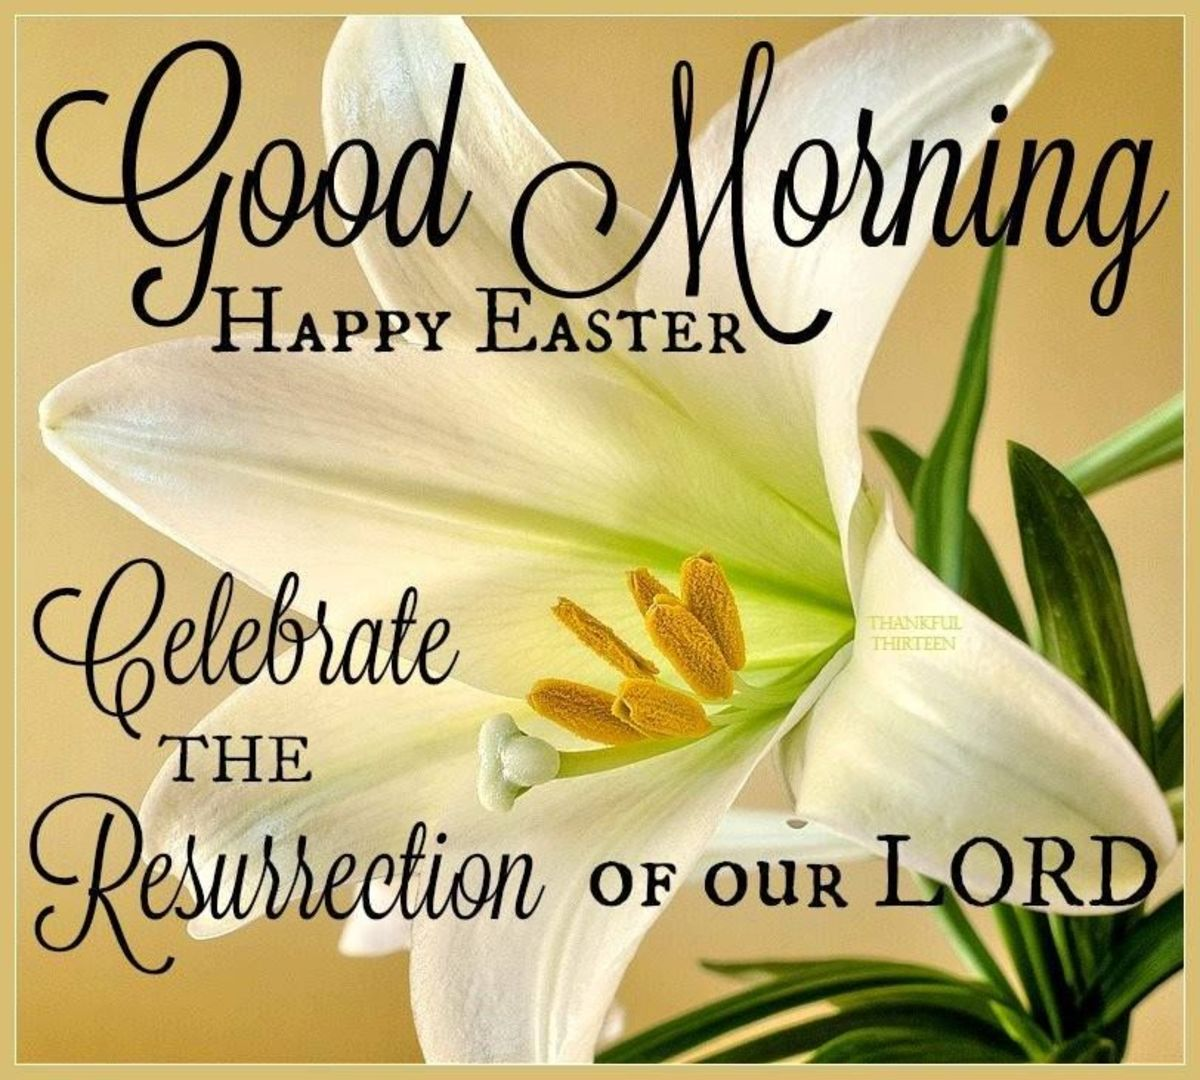 Good Morning Happy Easter.